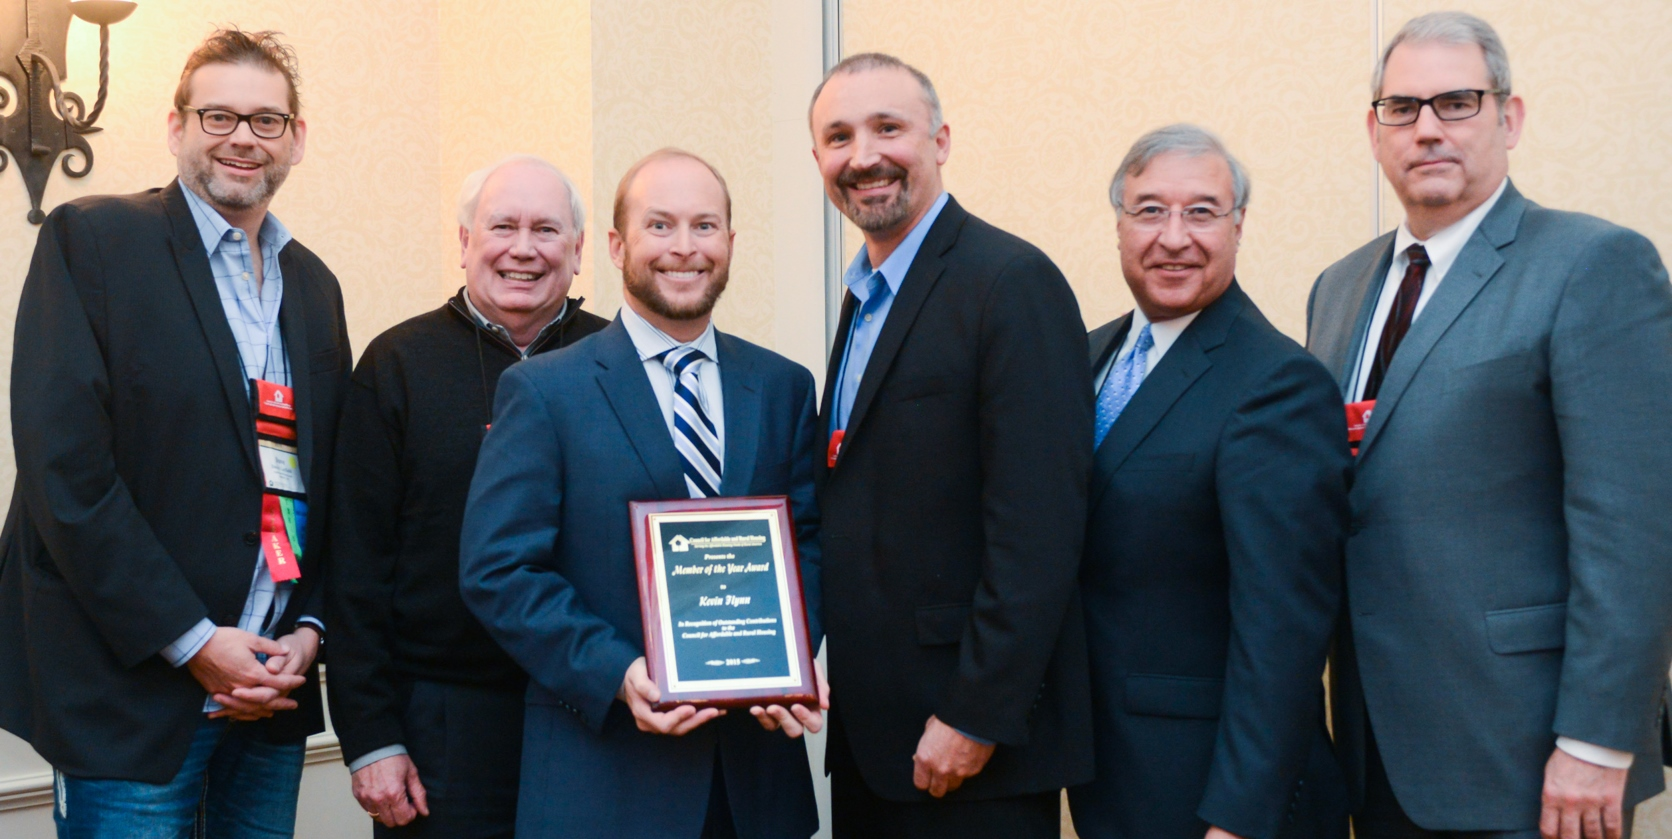 Pictured with Kevin Flynn are (from left to right) David Layfield (2015 Member of the Year), Charles Bringardner (2013 Member of the Year), Lowell Ray Barron II (Current CARH President), Tony Hernandez (Administrator, Rural Housing Service) and Don Beaty (2014 Member of the Year).